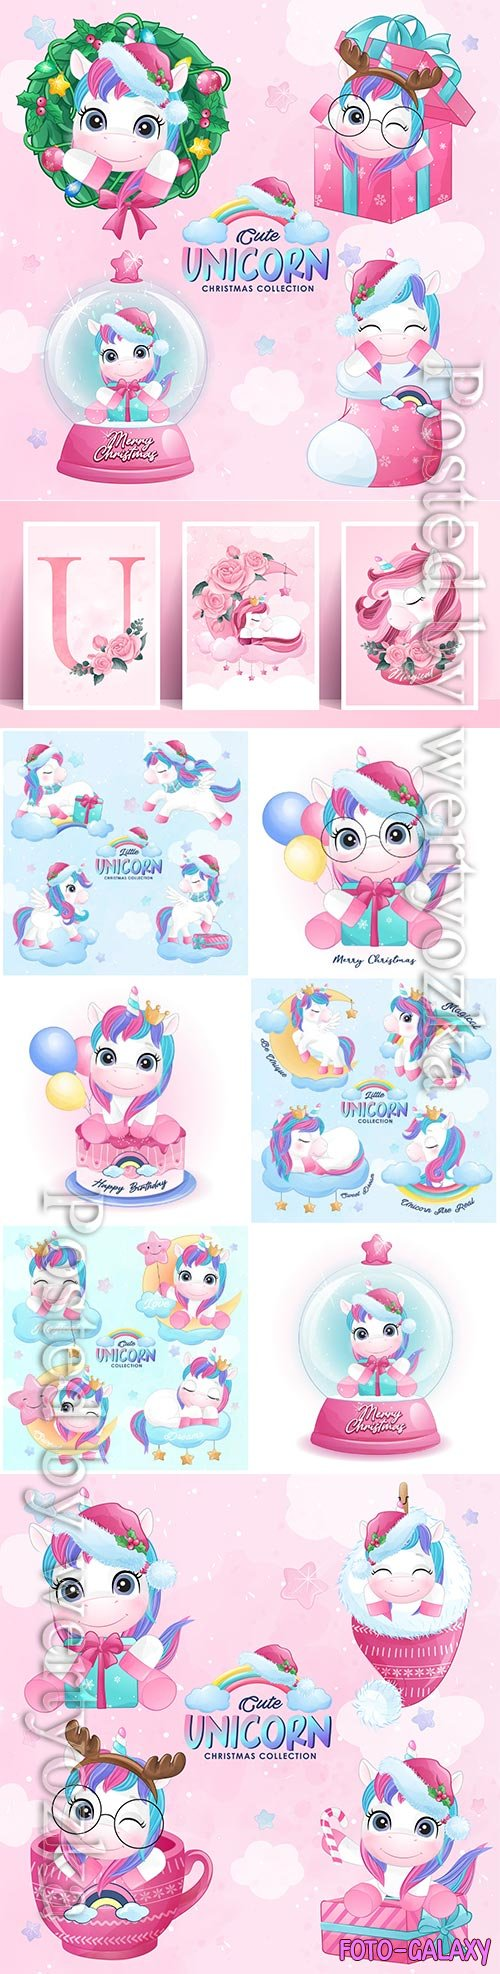 Cute doodle unicorn vector set in watercolor style